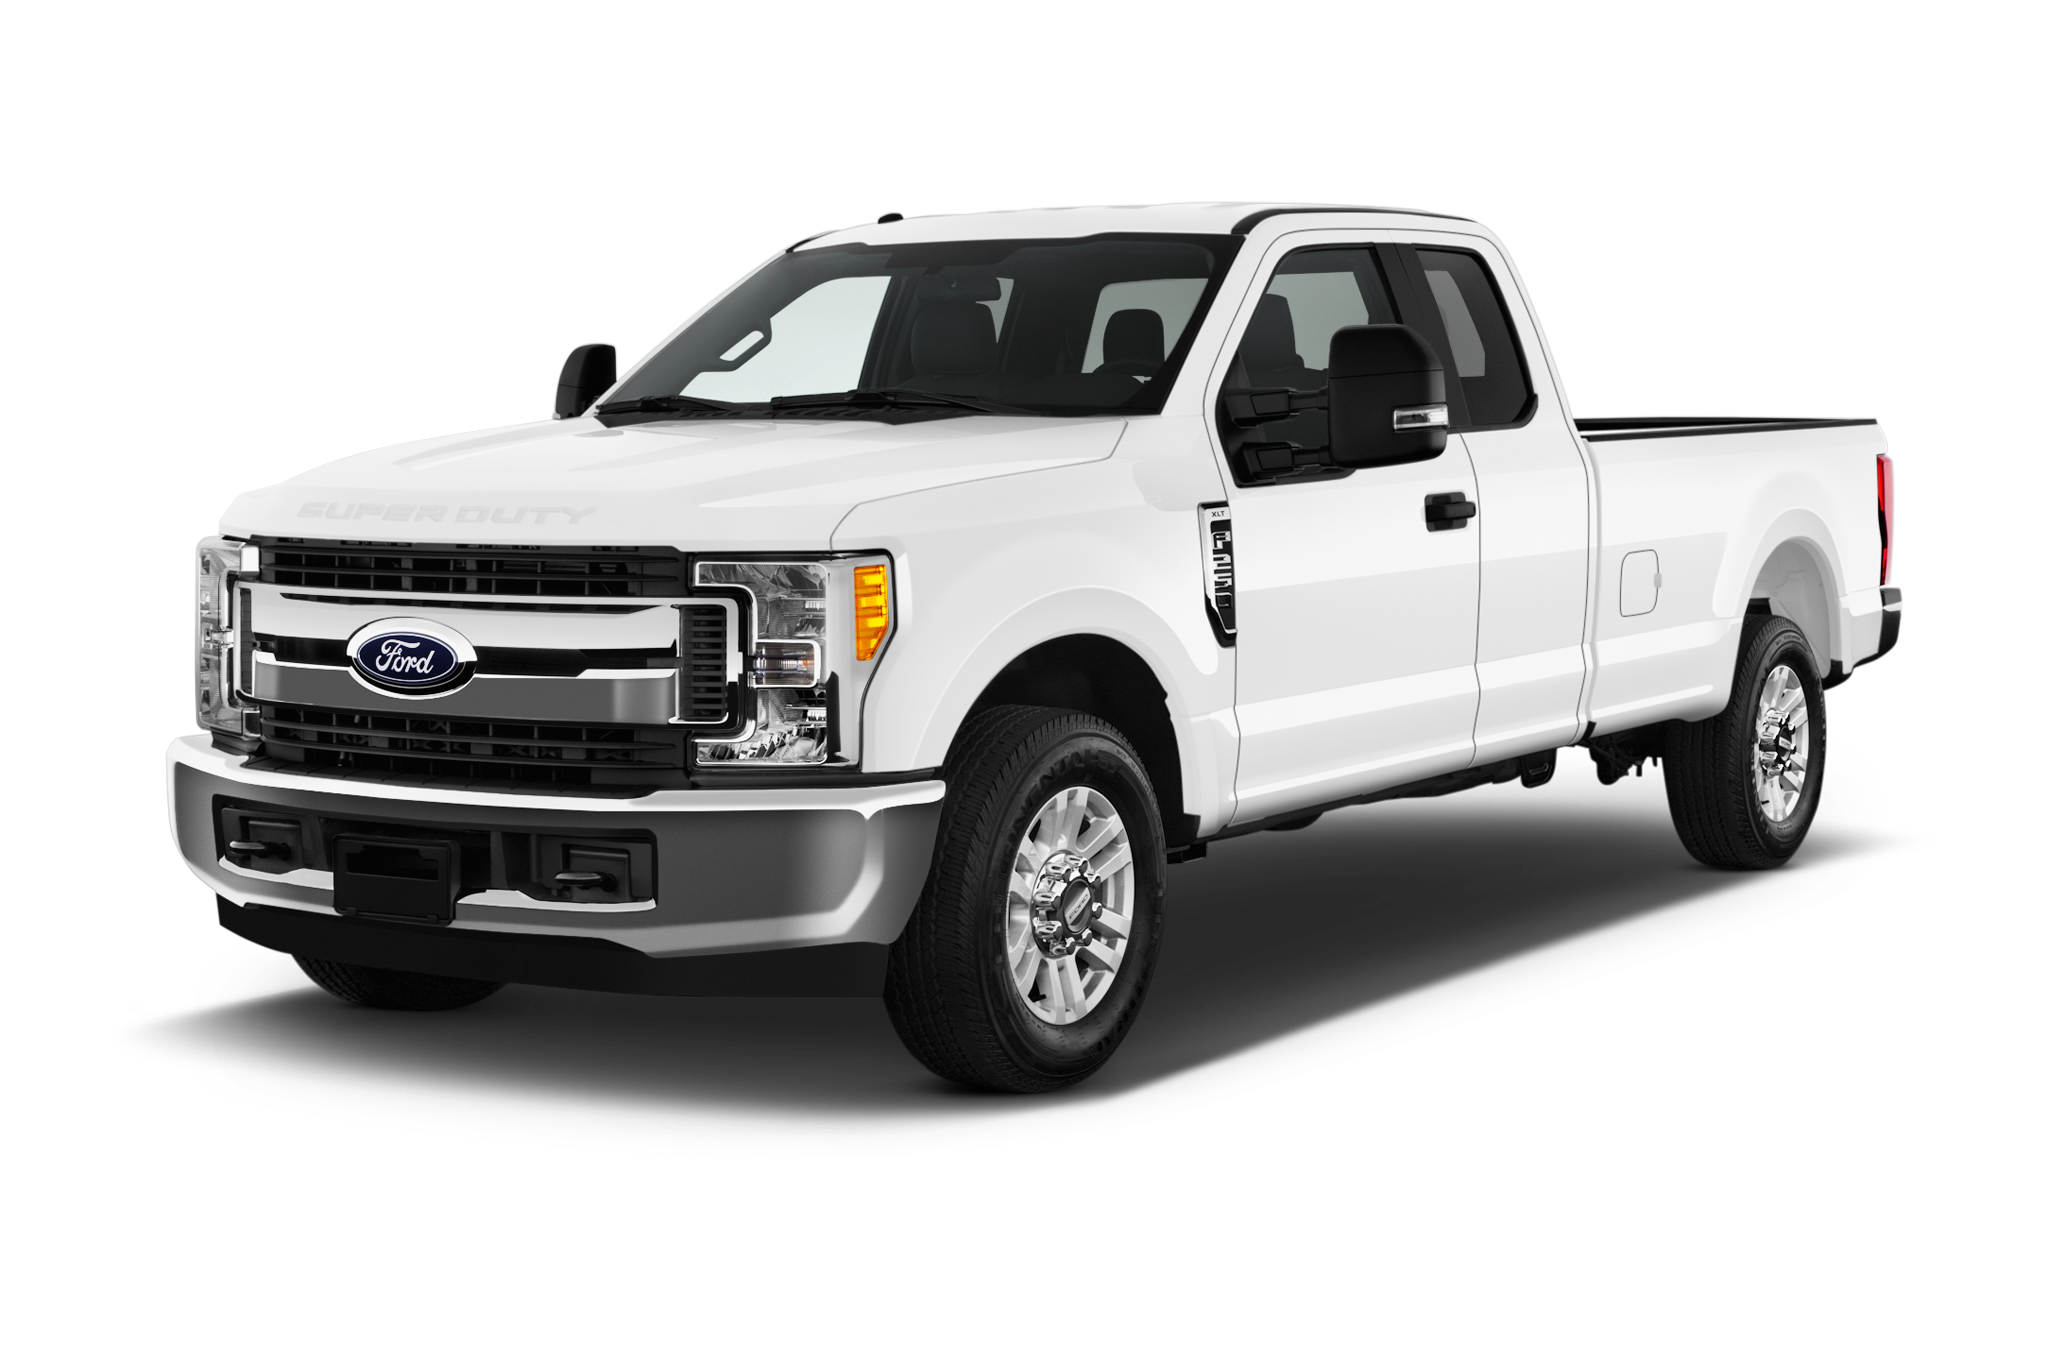 2017-ford-f-250-xlt-supercab-pick-up-angular-front Cool Review About Chevy S10 tow Capacity with Breathtaking Gallery Cars Review